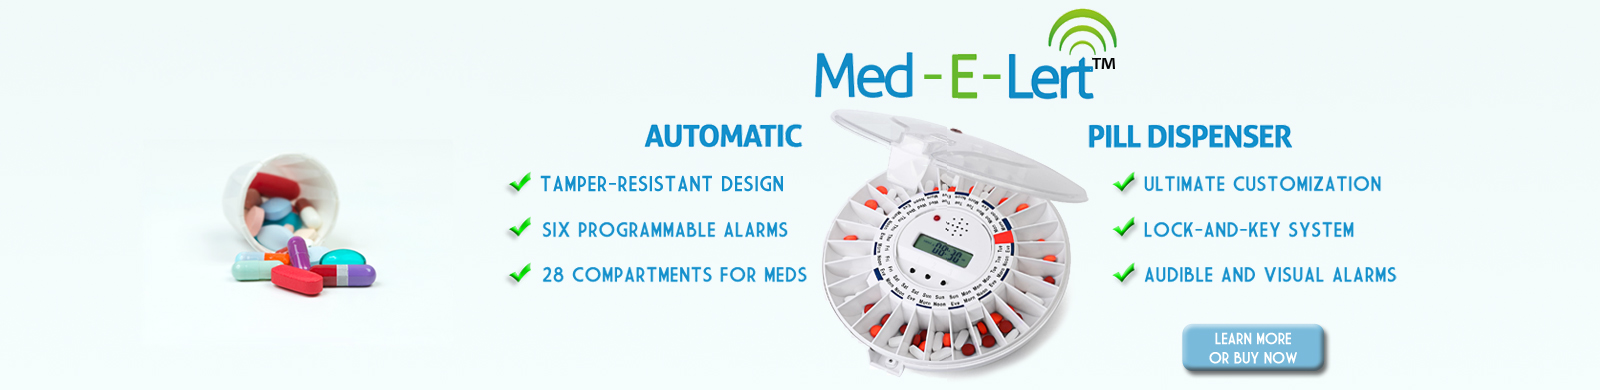 Med-E-Lert Automatic Pill Dispenser on Sale